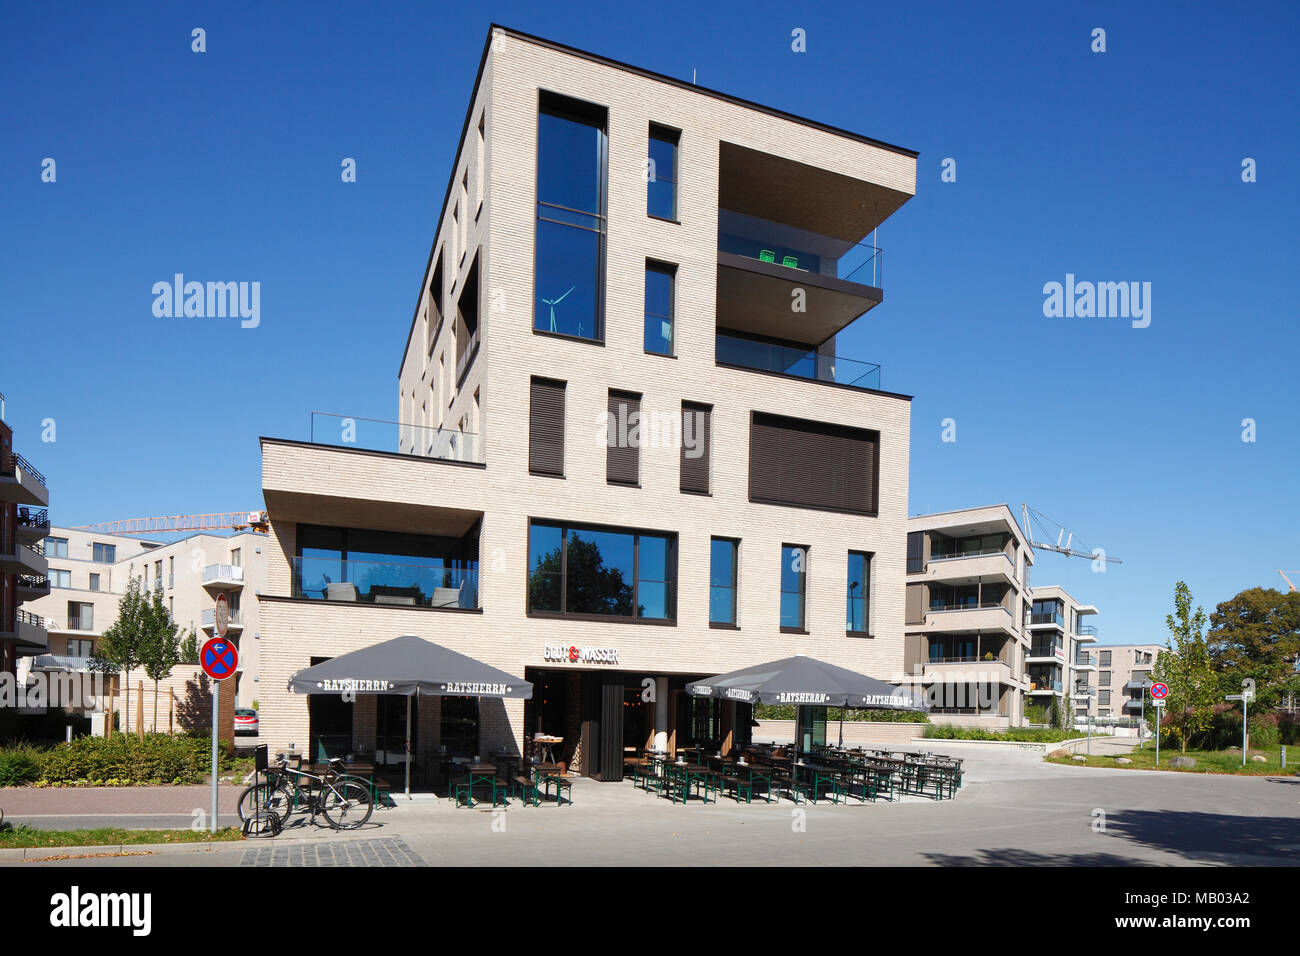 Oldenburg Shopping Center Oldenburg Germany Deutschland Stock Photos And Oldenburg